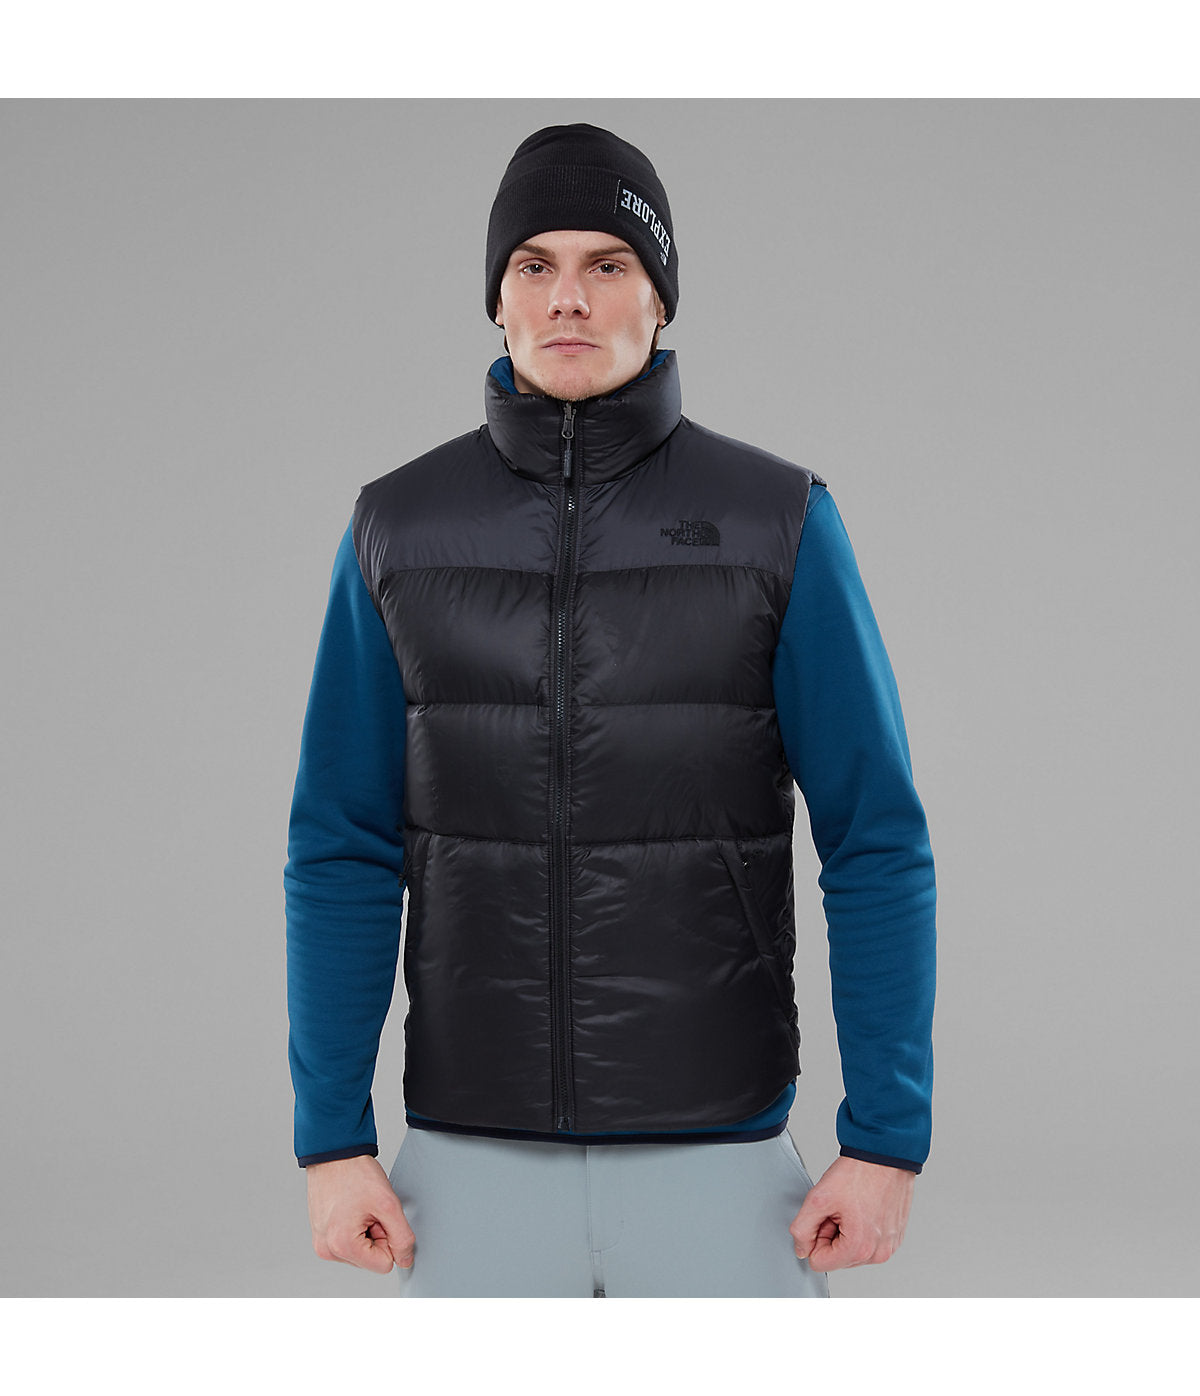 2db51e6727c8 The North Face Mens Nuptse III Zip-In Gilet - Outdoor Sports